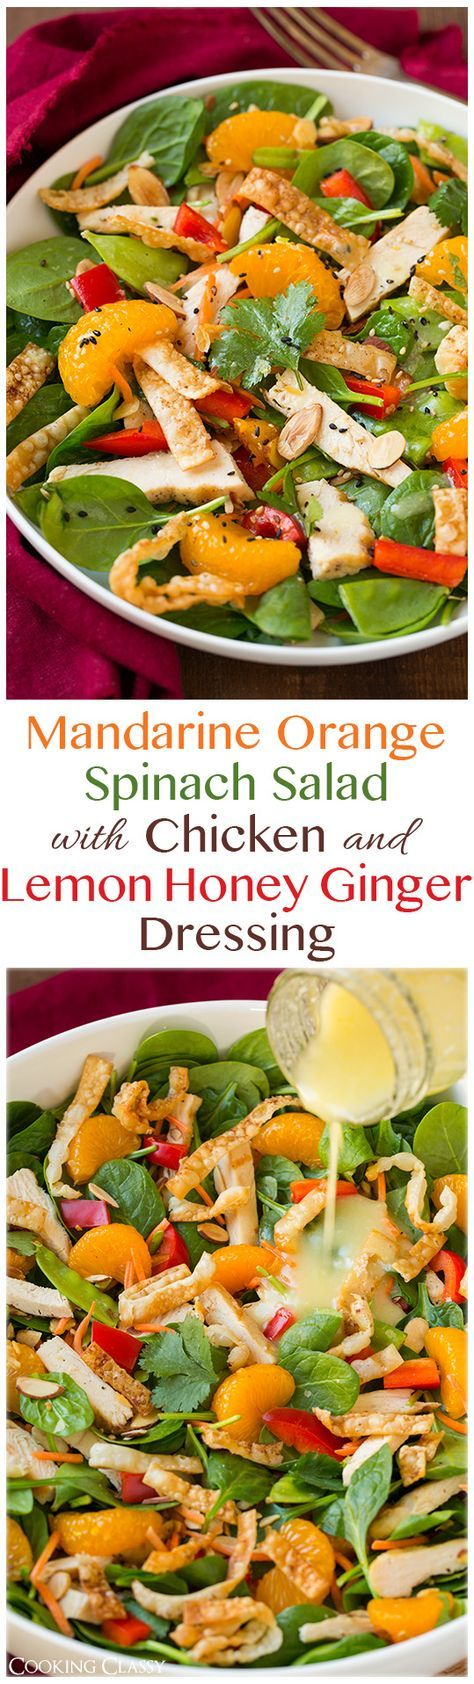 Mandarine Orange Spinach Salad with Chicken and Lemon Honey Ginger Dressing - this was one of the best salads I've ever eaten, my mom said the same too! DELICIOUS!! The dressing is to die for!